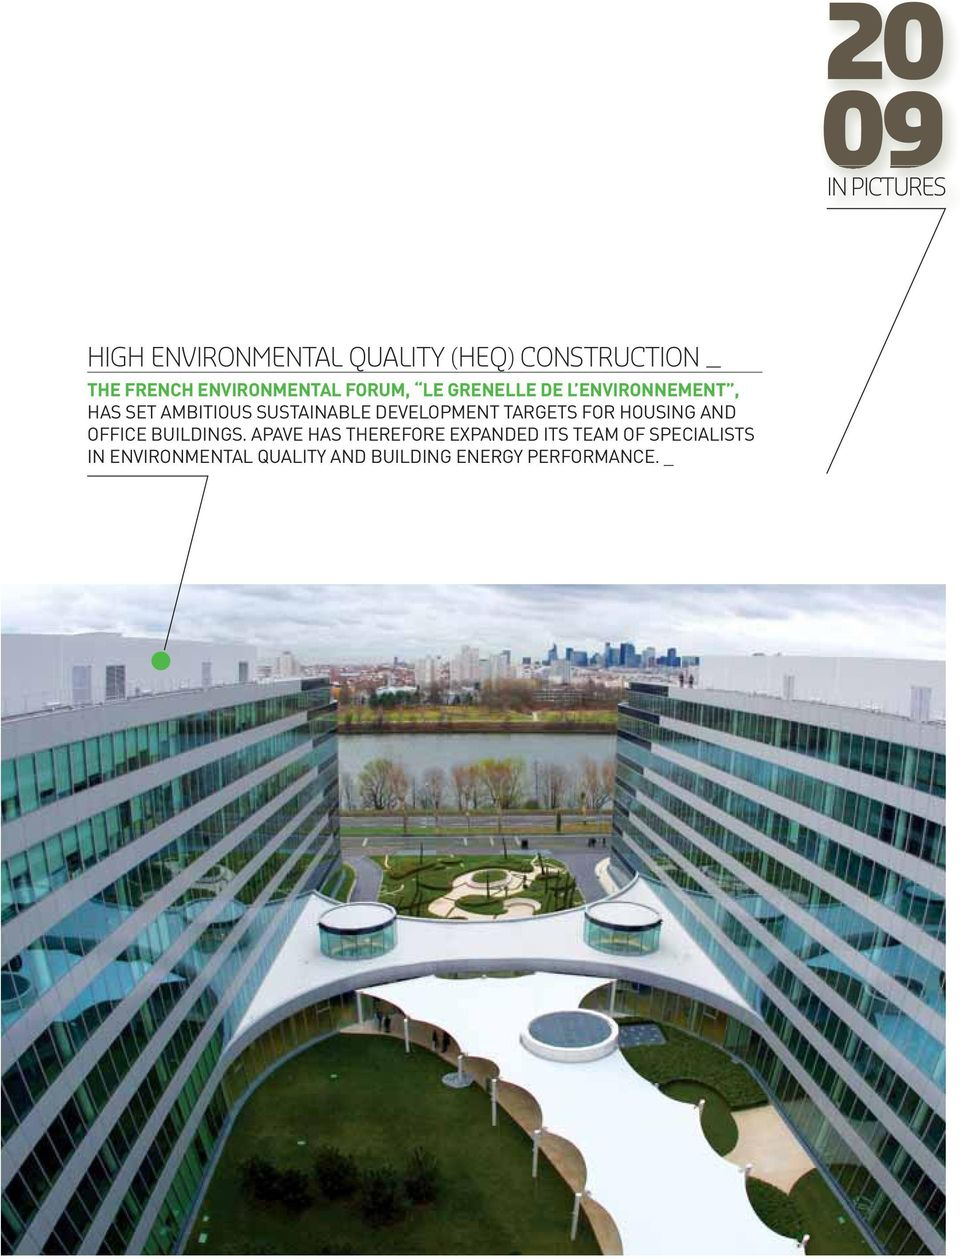 SUSTAINABLE DEVELOPMENT TARGETS FOR HOUSING AND OFFICE BUILDINGS.